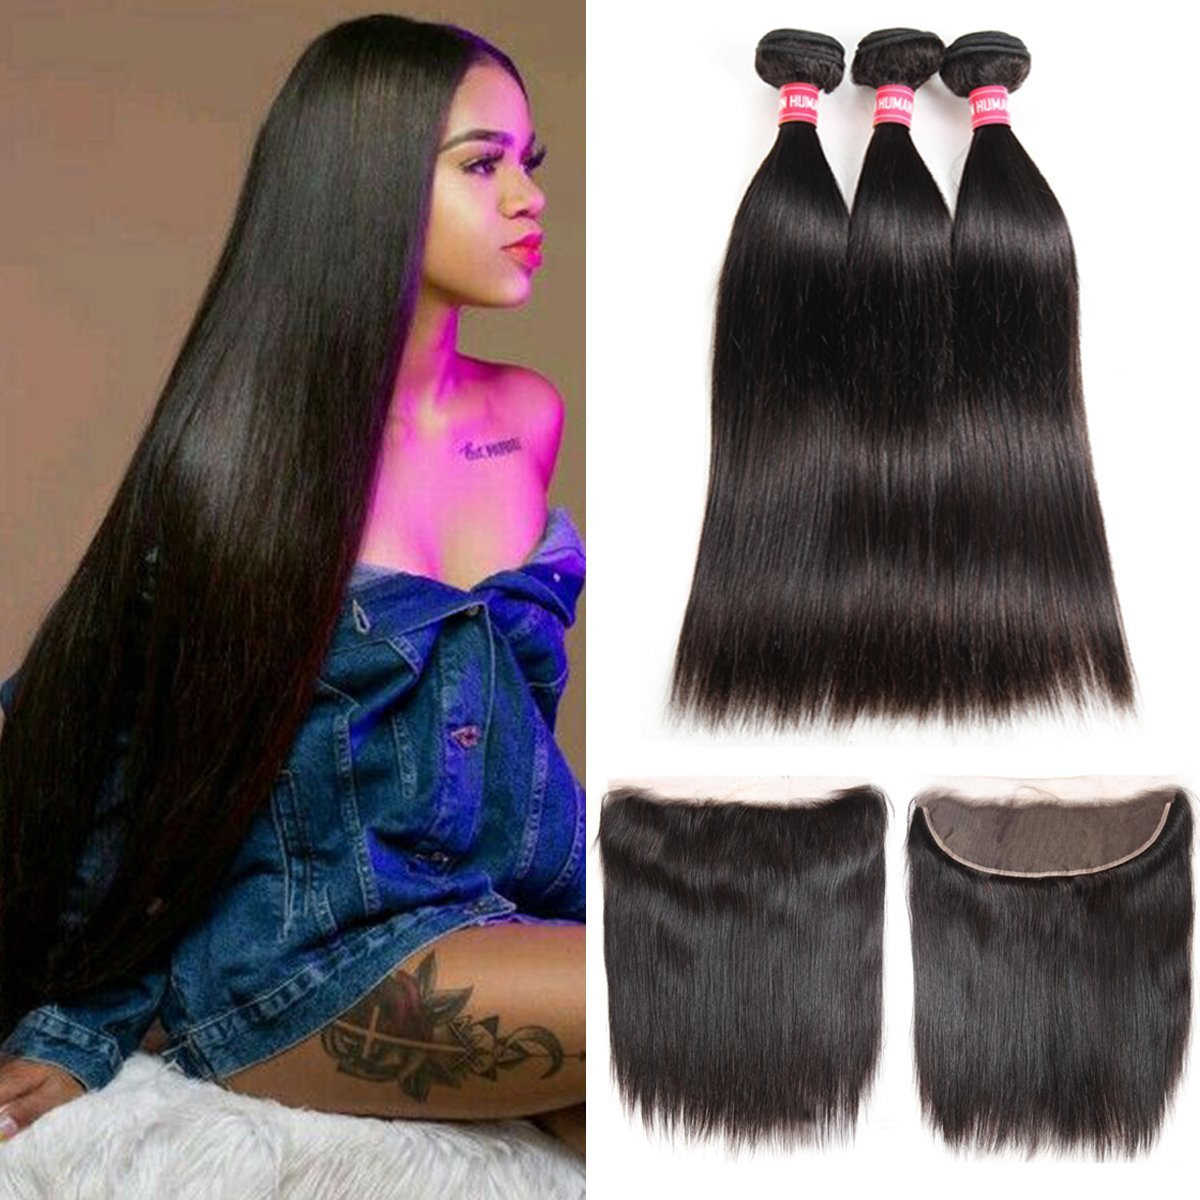 Brazilian Straight Hair 3 Bundles With Frontal Closure 13×4 Ear To Ear Lace Frontal With Bundles 100% Unprocessed Virgin Human Hair Extensions Weave Natural Color (22 24 26 +20 Frontal)